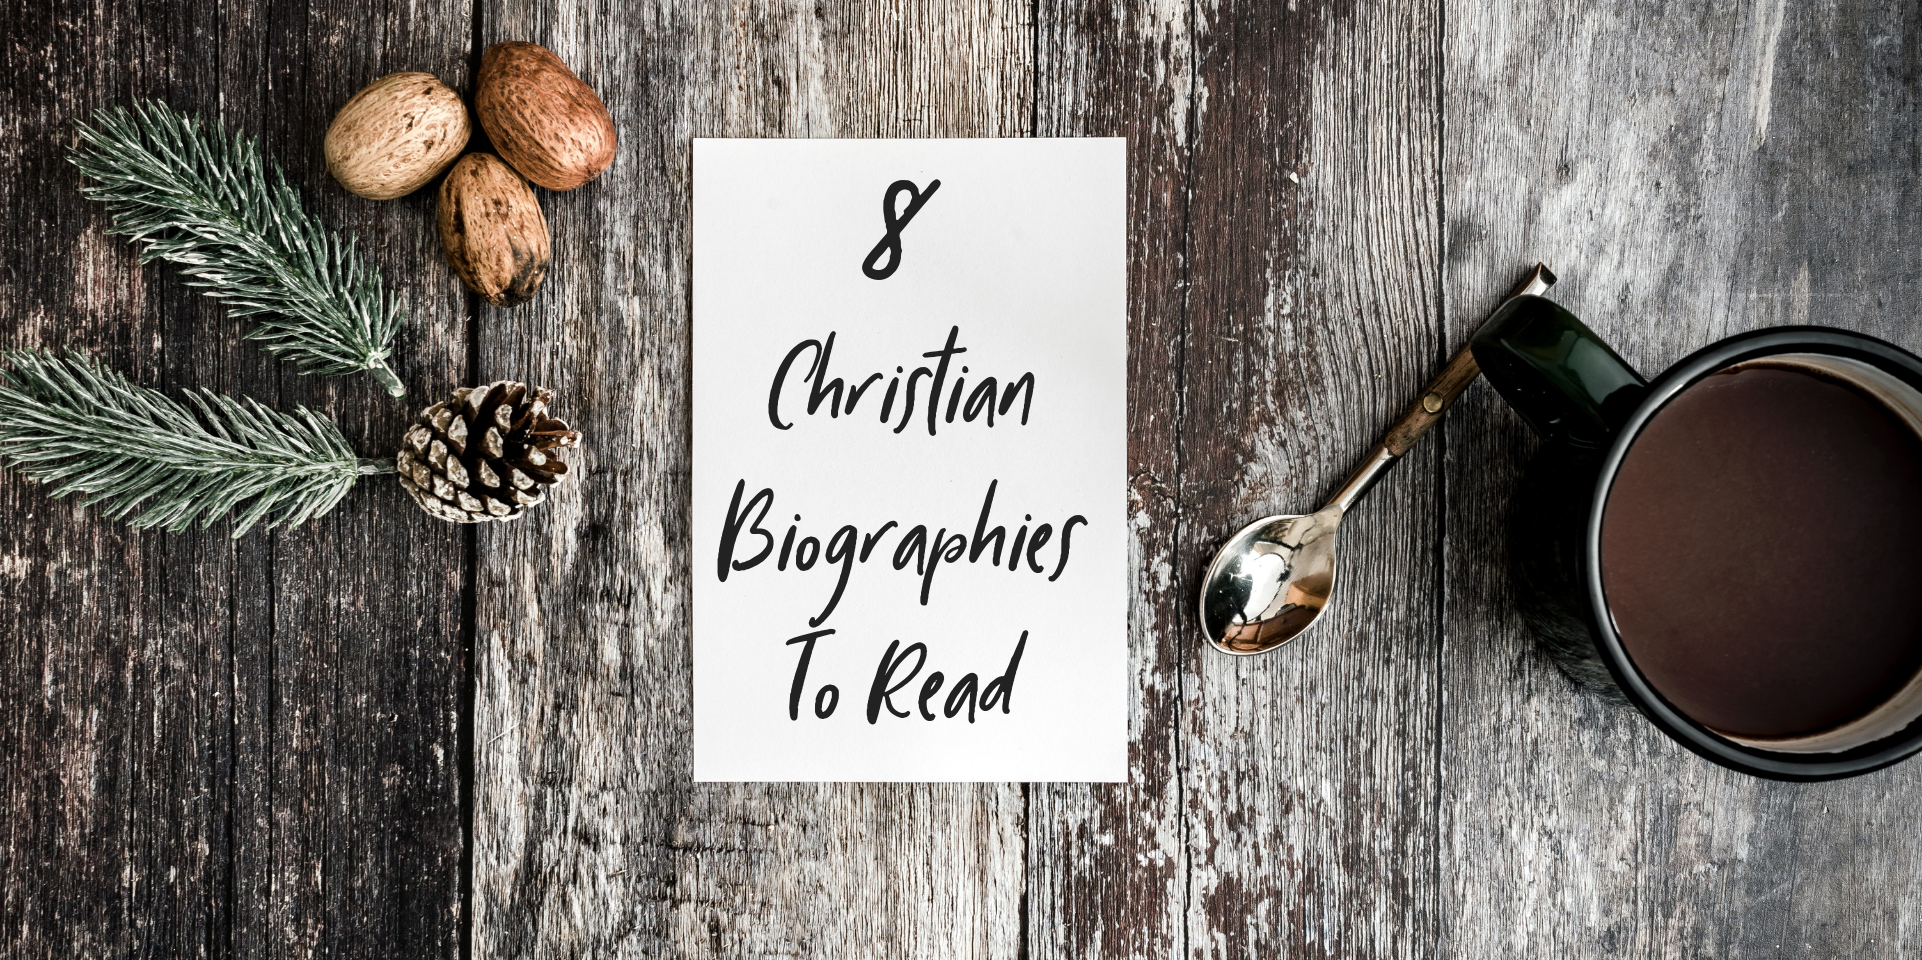 8 Christian Biographies Must Read